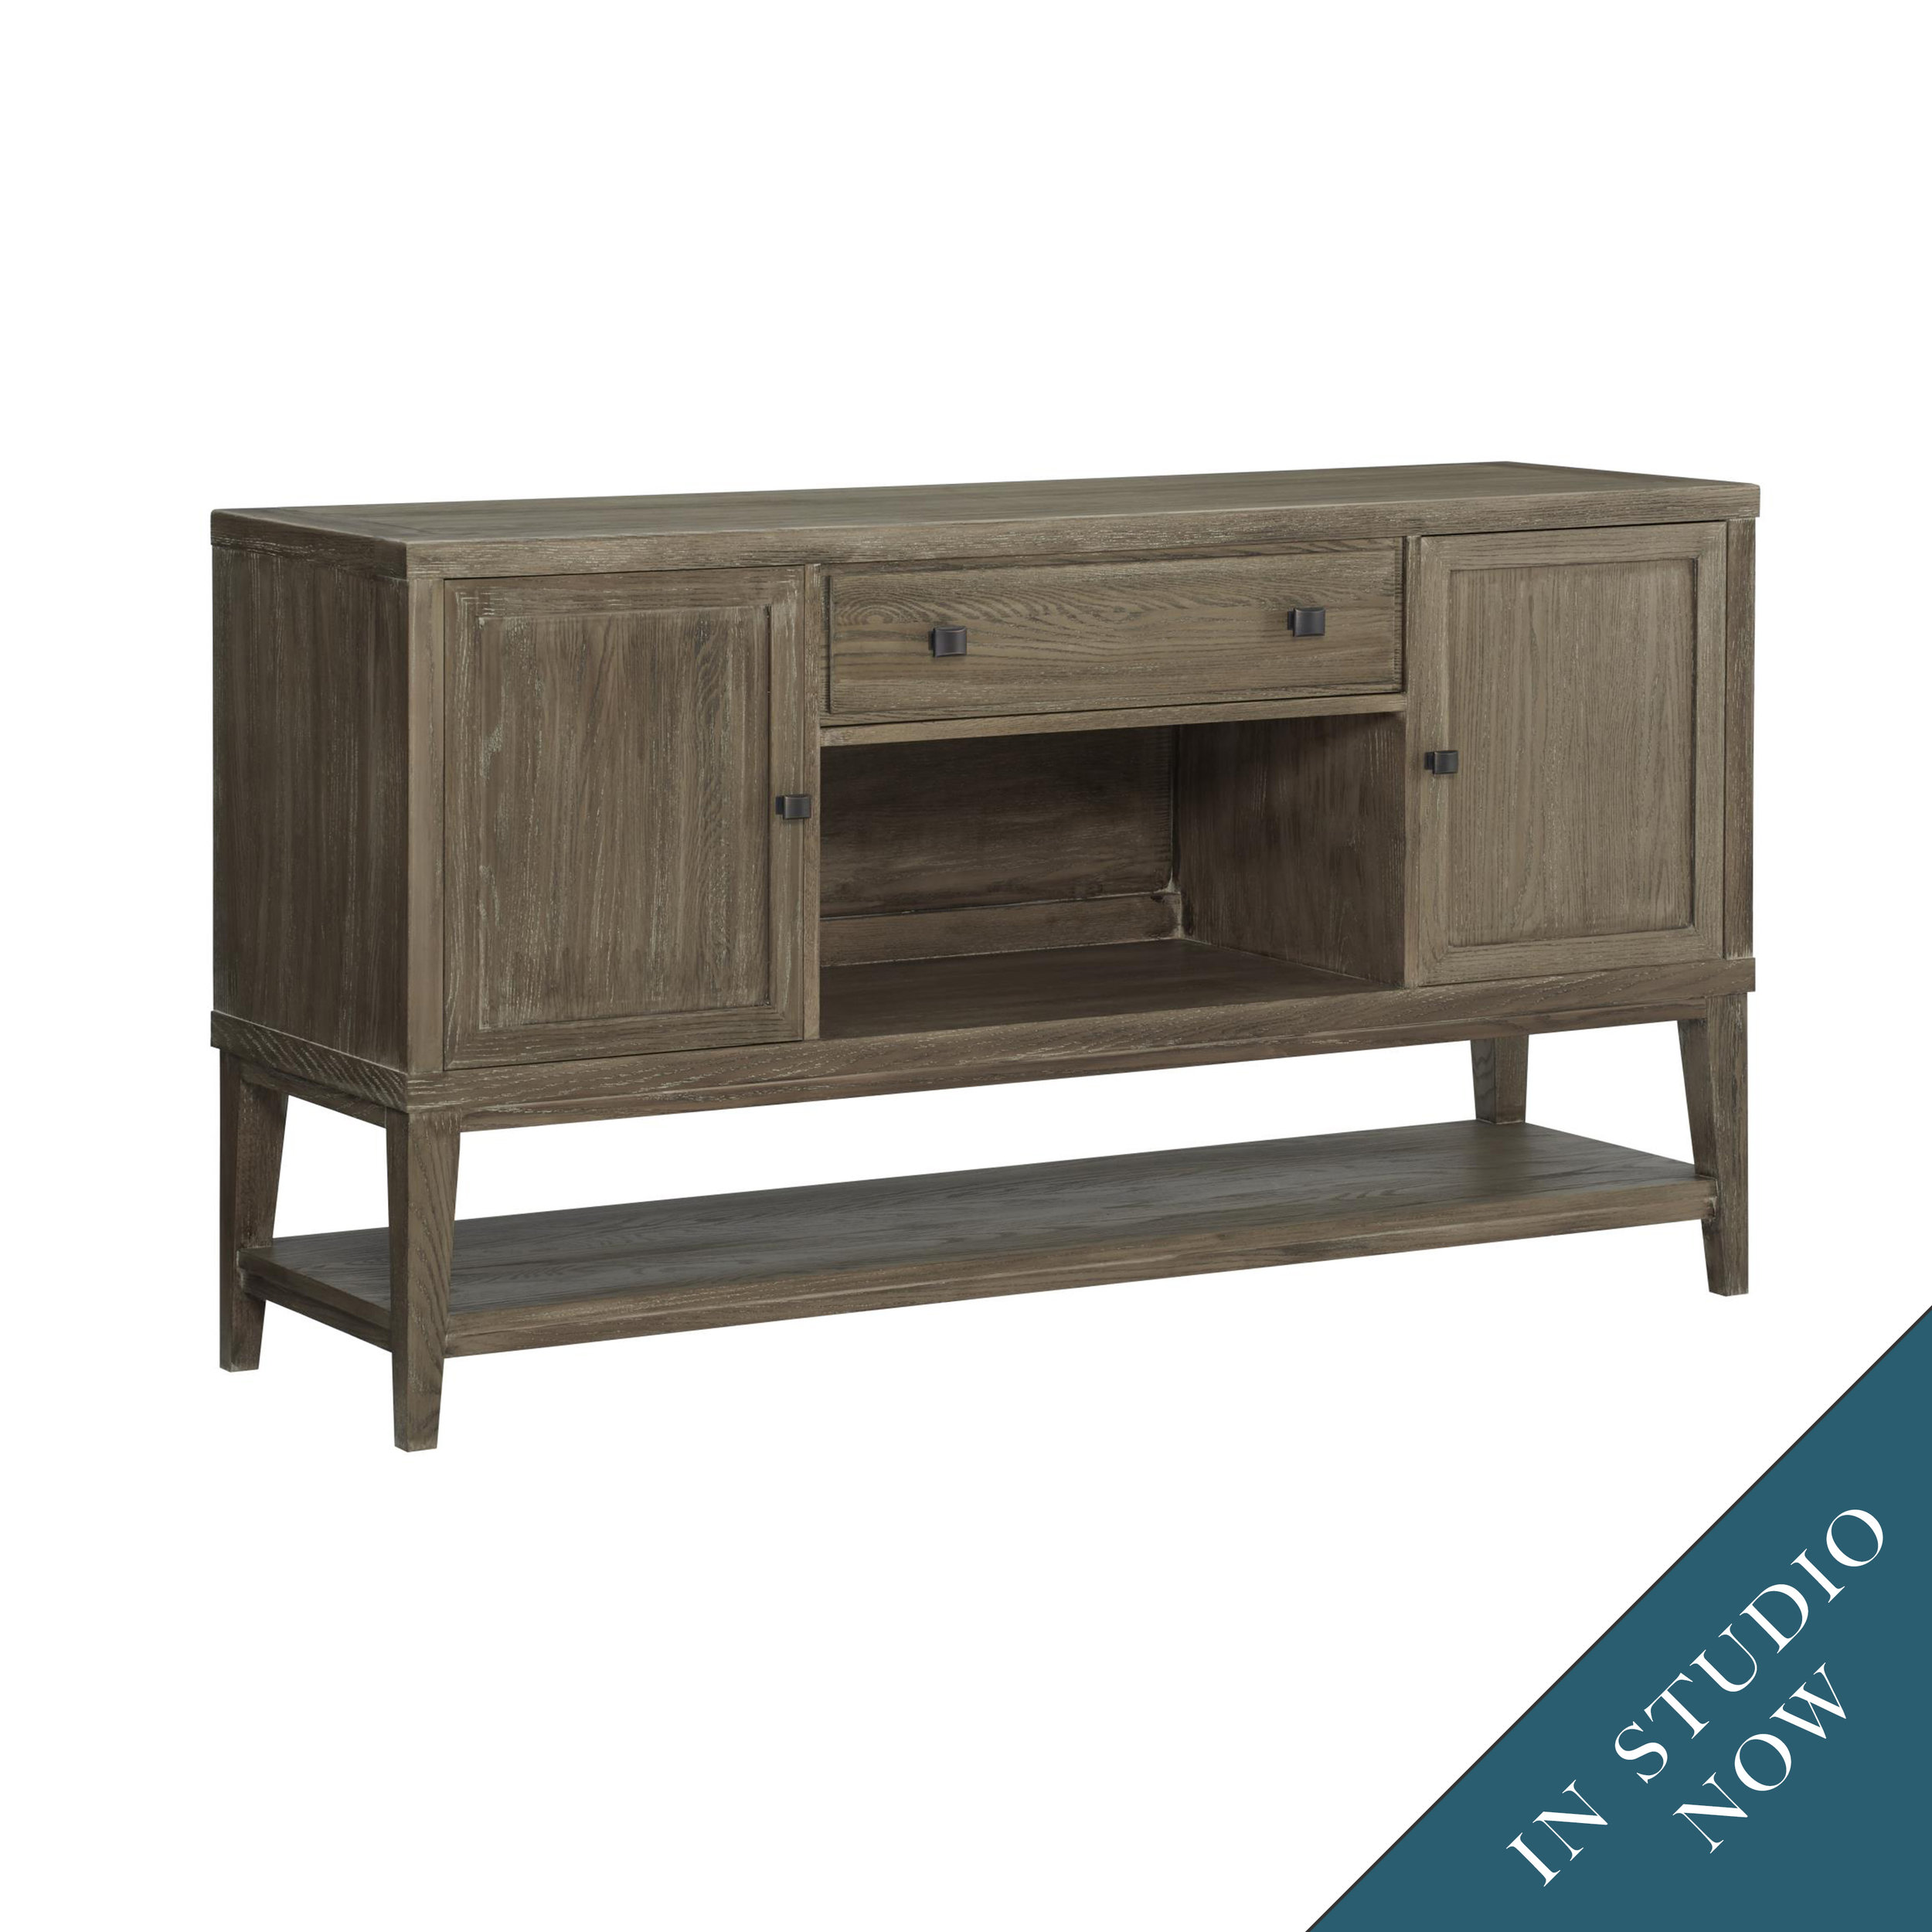 The washed taupe finish on our Halyard buffet is a perfect example of the warm-cool tones that I use in projects.